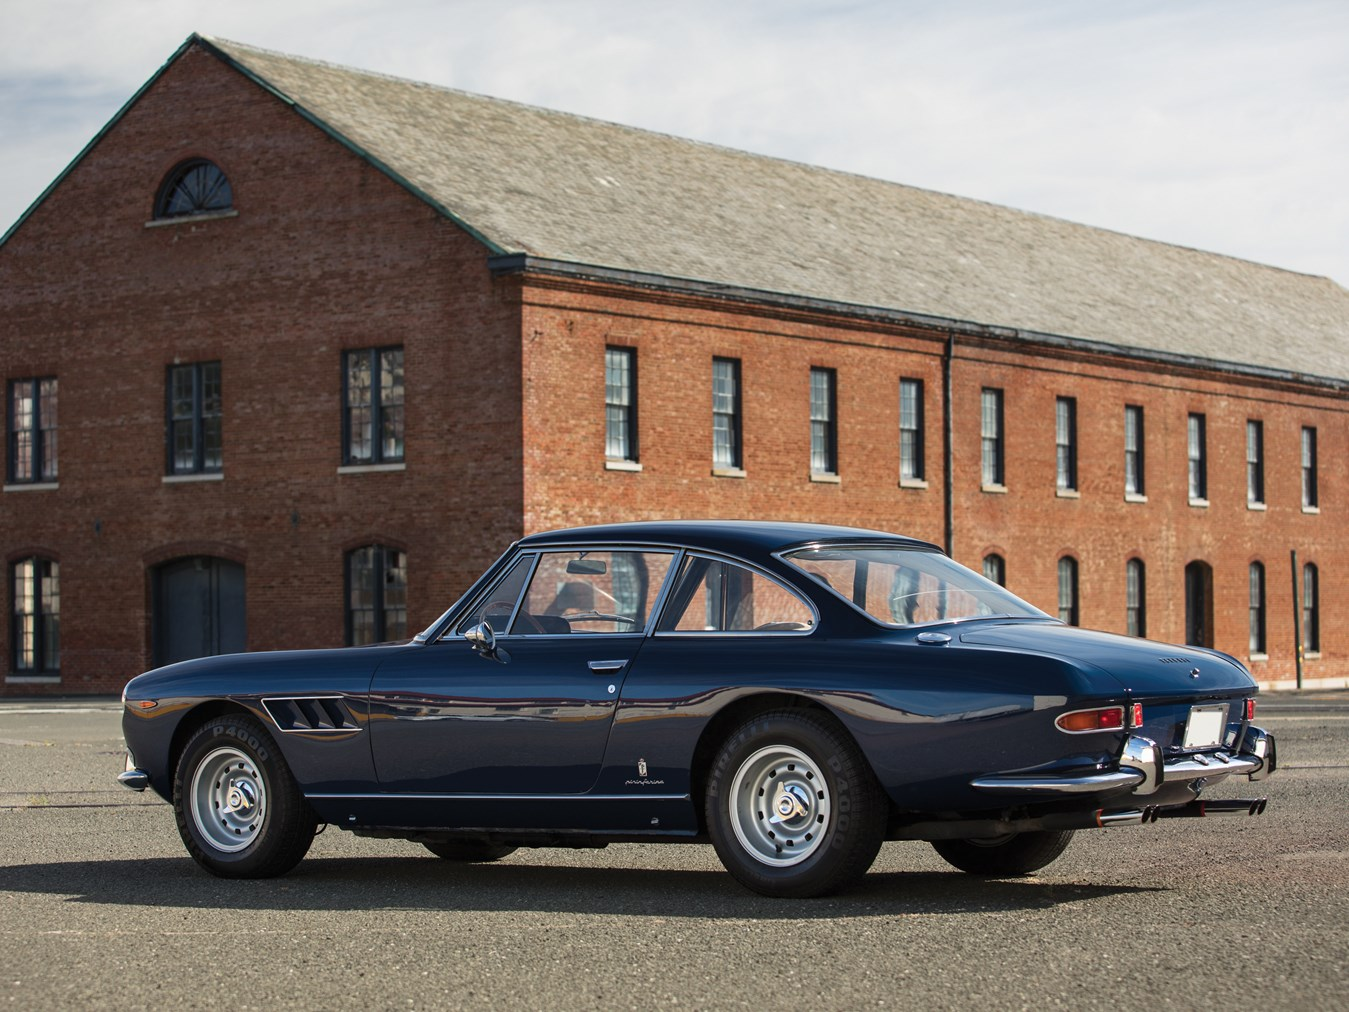 The Pininfarina styling gives this car a sporting gracefulness that is typically sixties Ferrari.